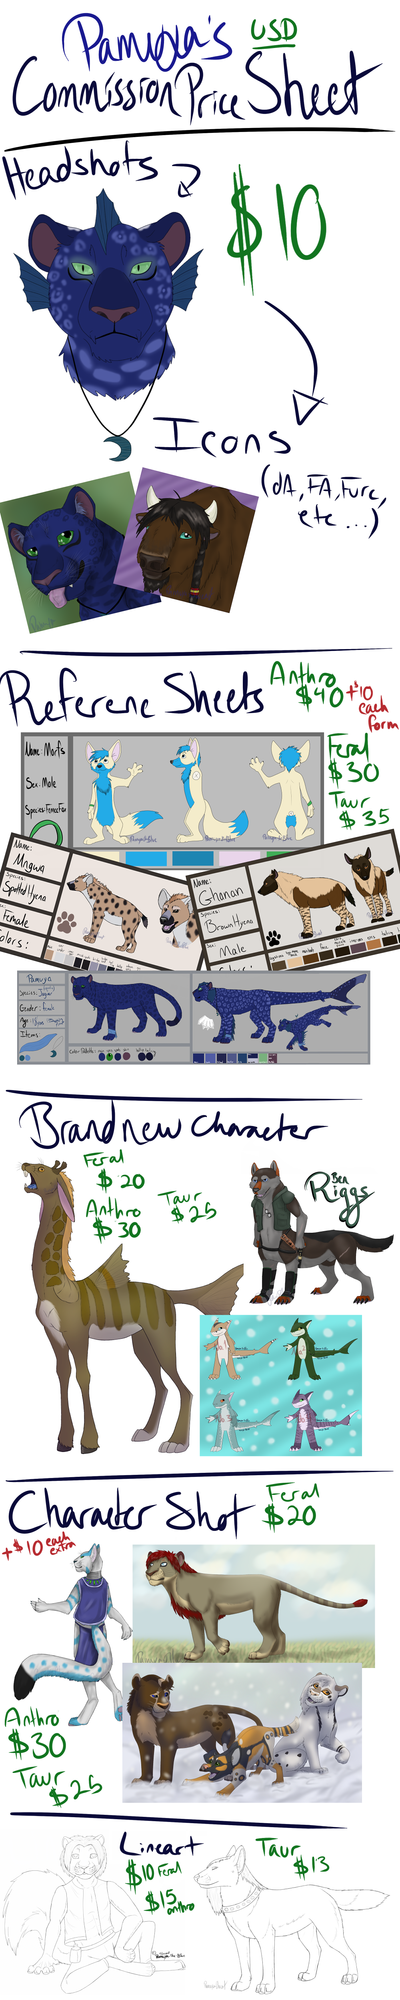 Paypal Commission Price Sheet (2 SLOTS LEFT) by Pamuya-Blucat